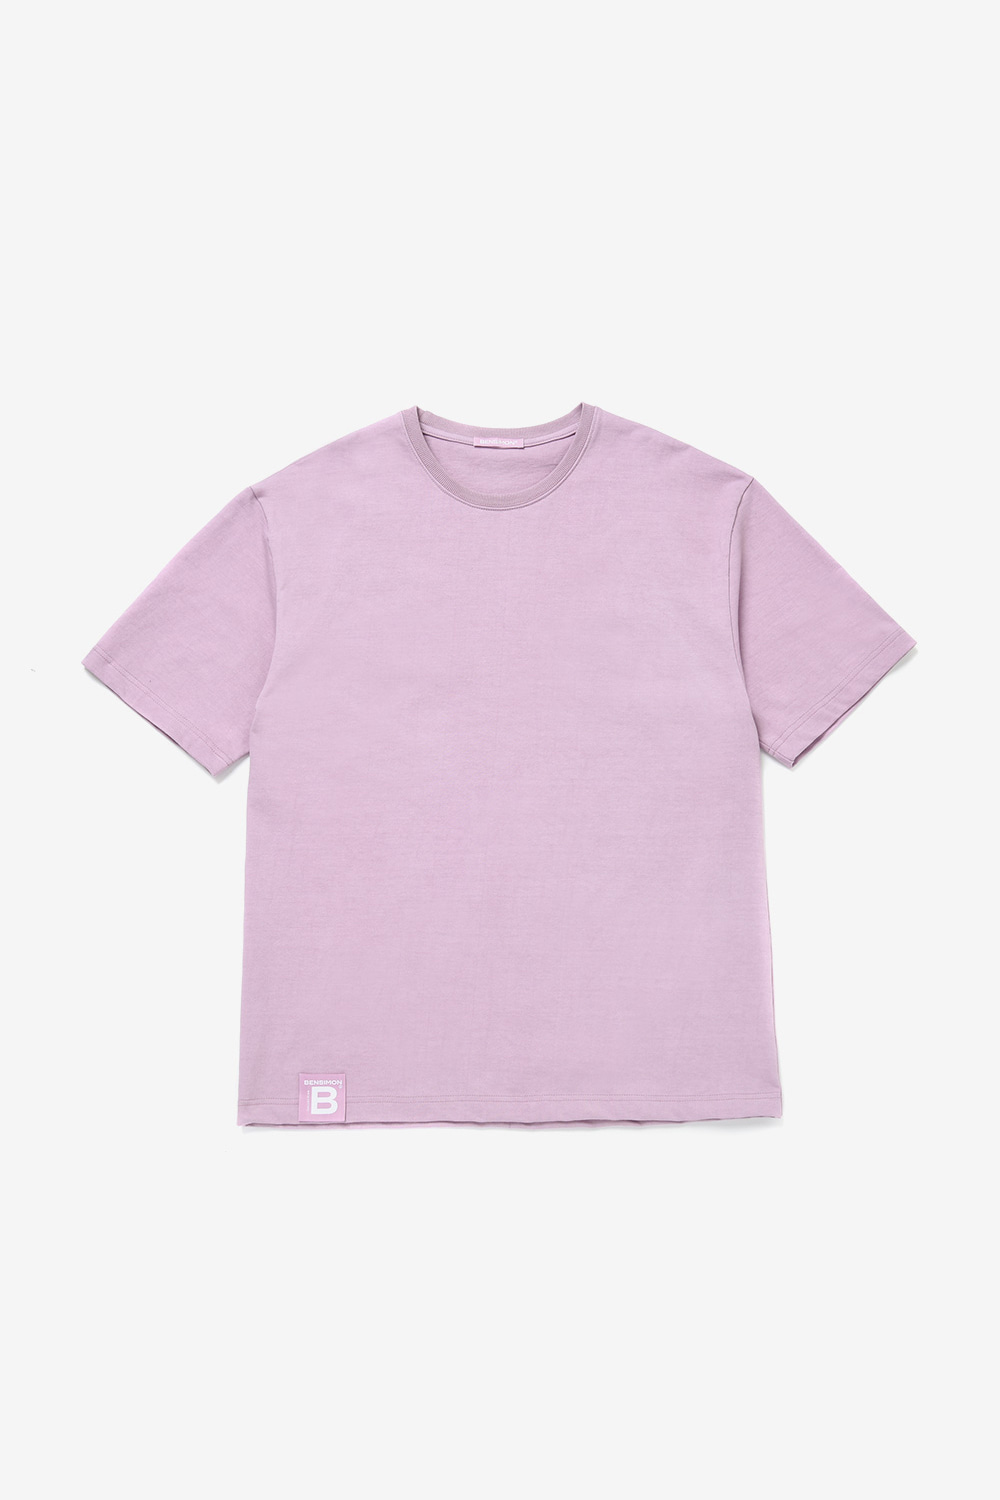 Original Label Over T(unisex)_Purple BS0STS205PP00F